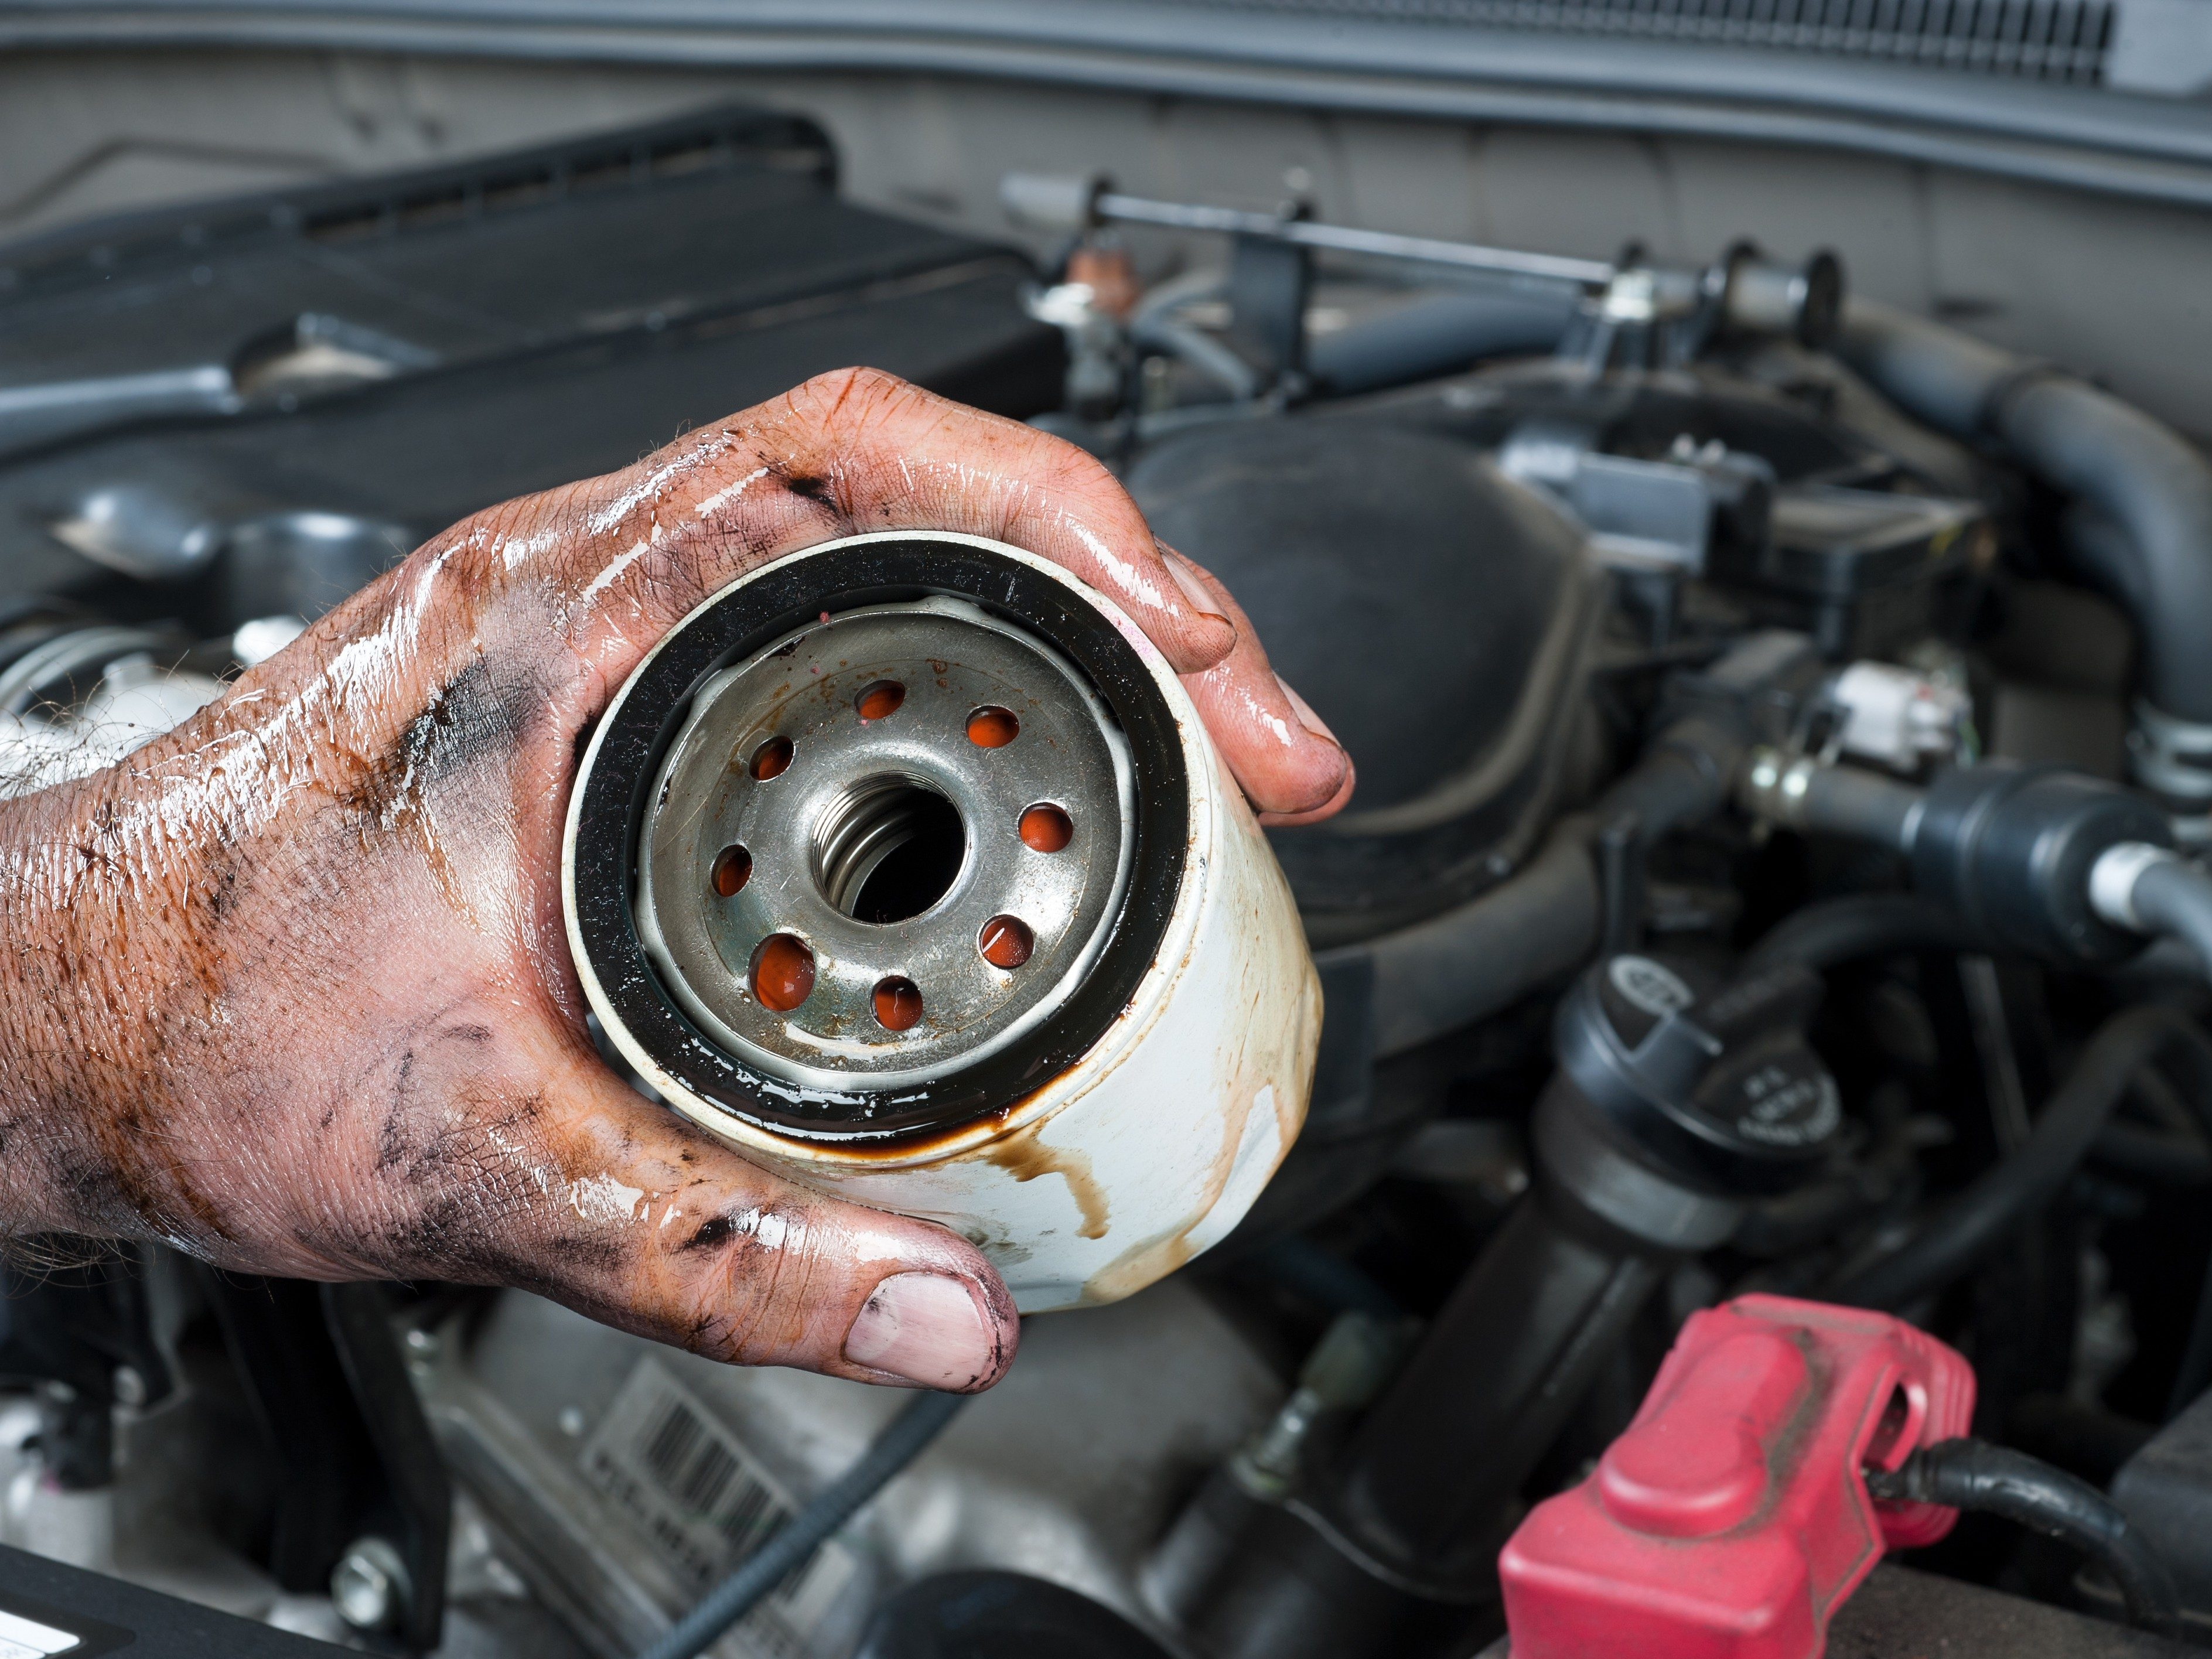 2. Oil protects the car engine, the oil filter protects the oil.